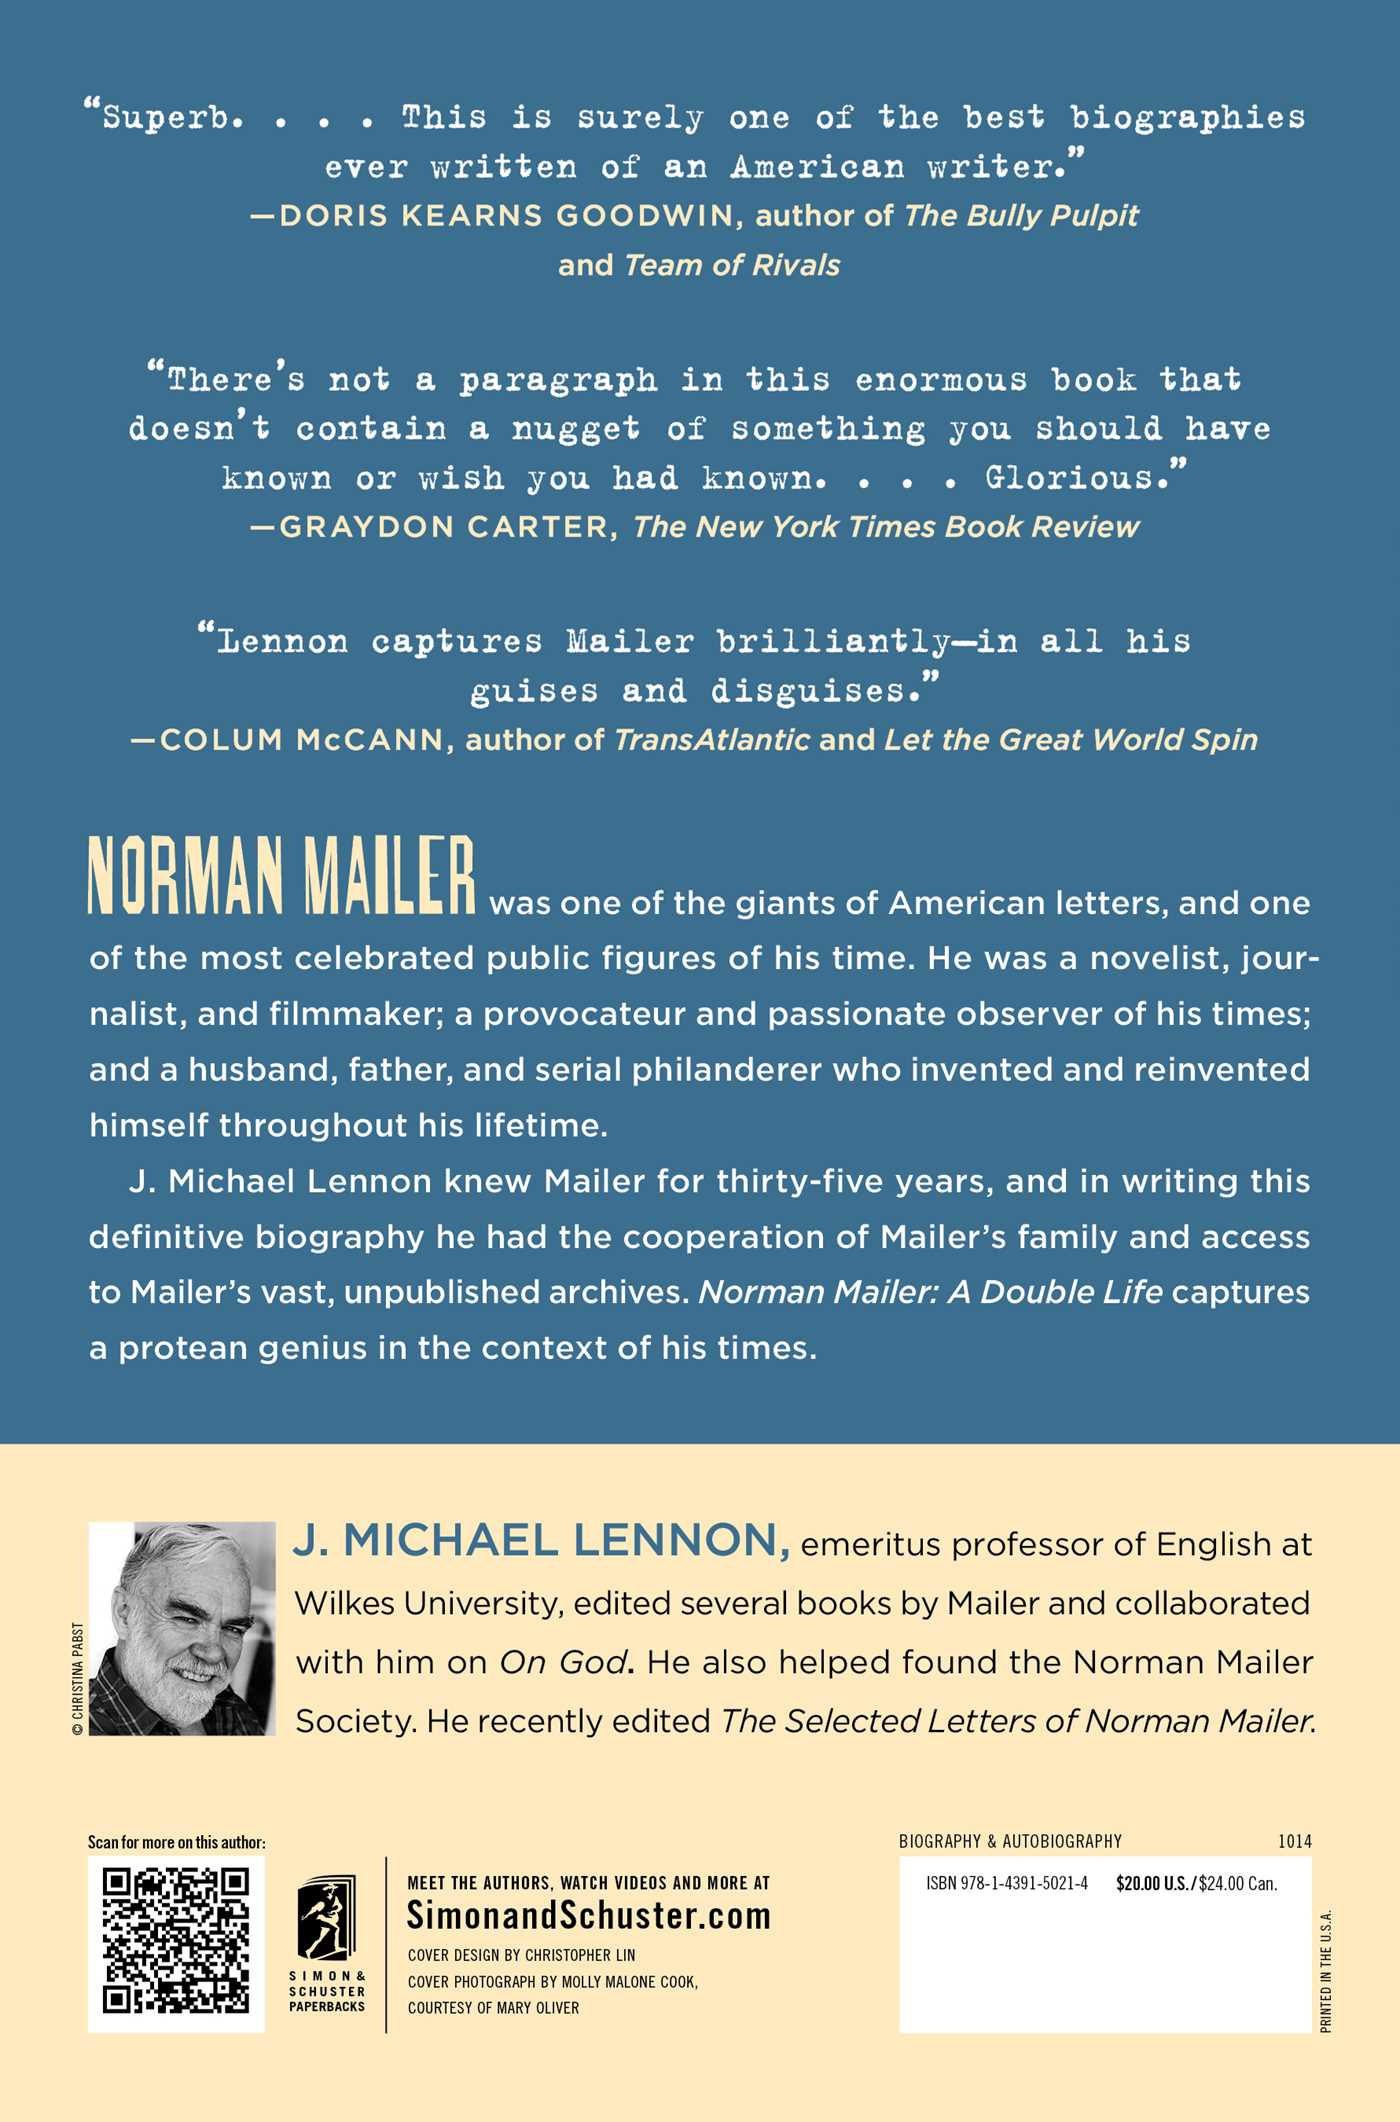 Norman-mailer-a-double-life-9781439150214_hr-back